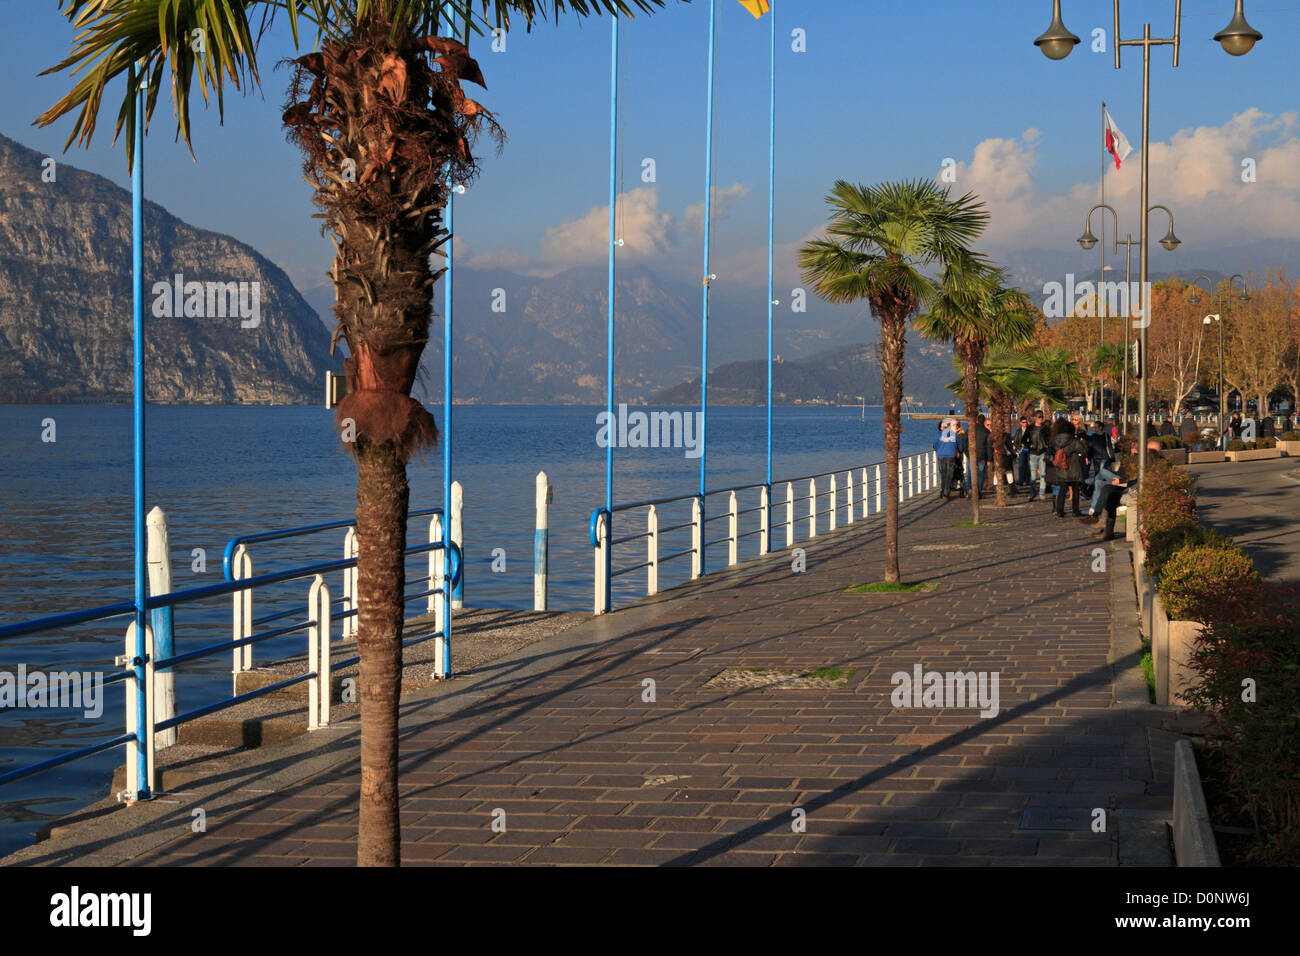 Tourists walking on the promenade by Lake Iseo near Bergamo in Autumn, Lombardy, Italy, Europe. - Stock Image